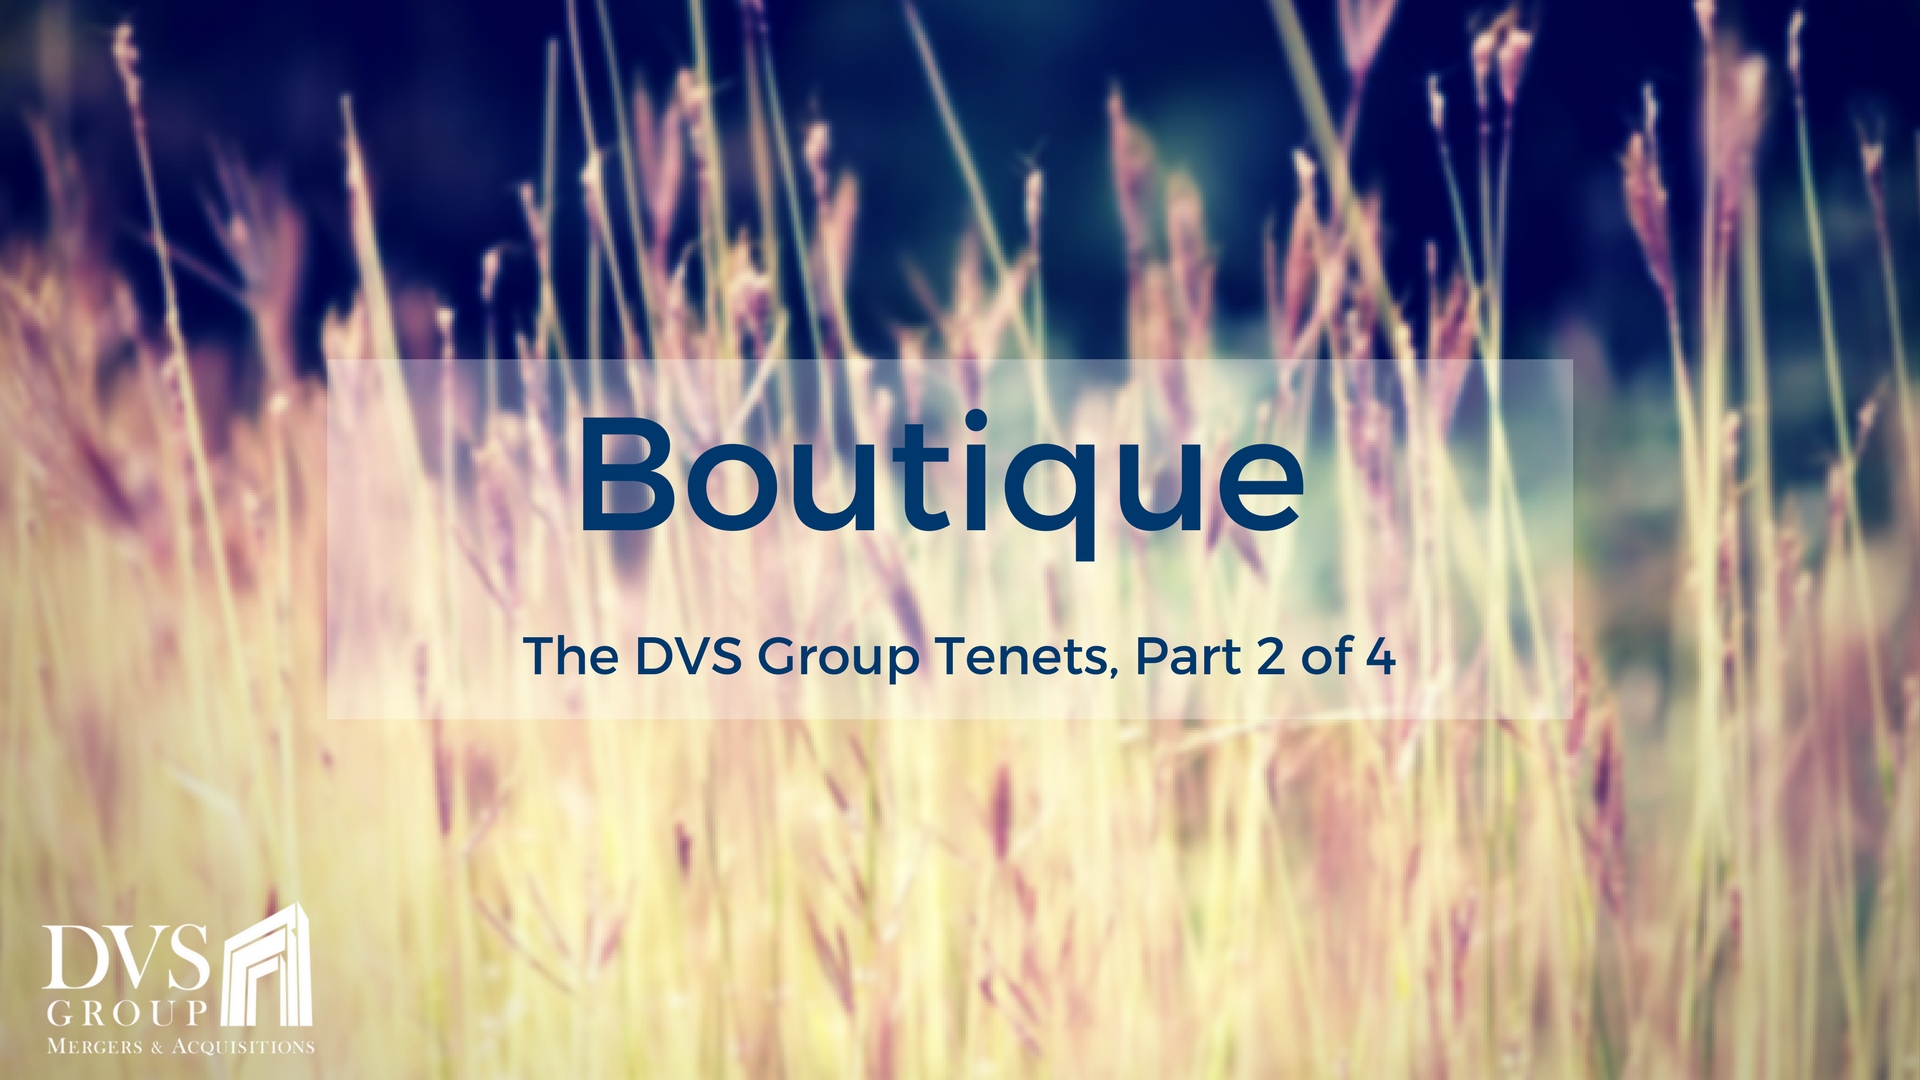 The DVS Group Tenets - Boutique